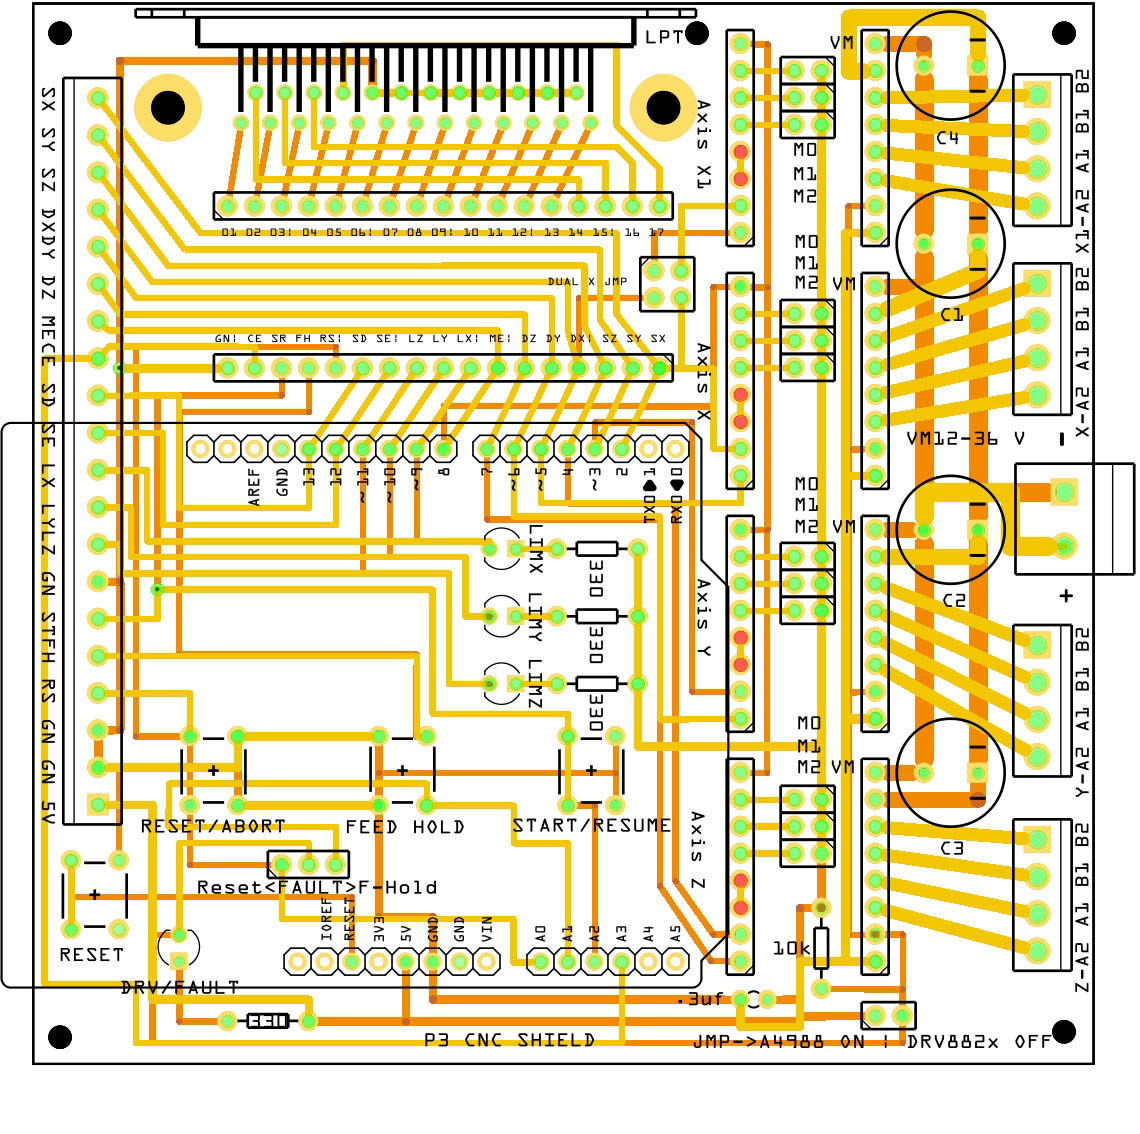 CNCshield arduino mega 2650 pinout question? � issue 390 � grbl grbl � github ciclop 3d scanner arduino uno/cnc shield v3 wiring diagram at readyjetset.co